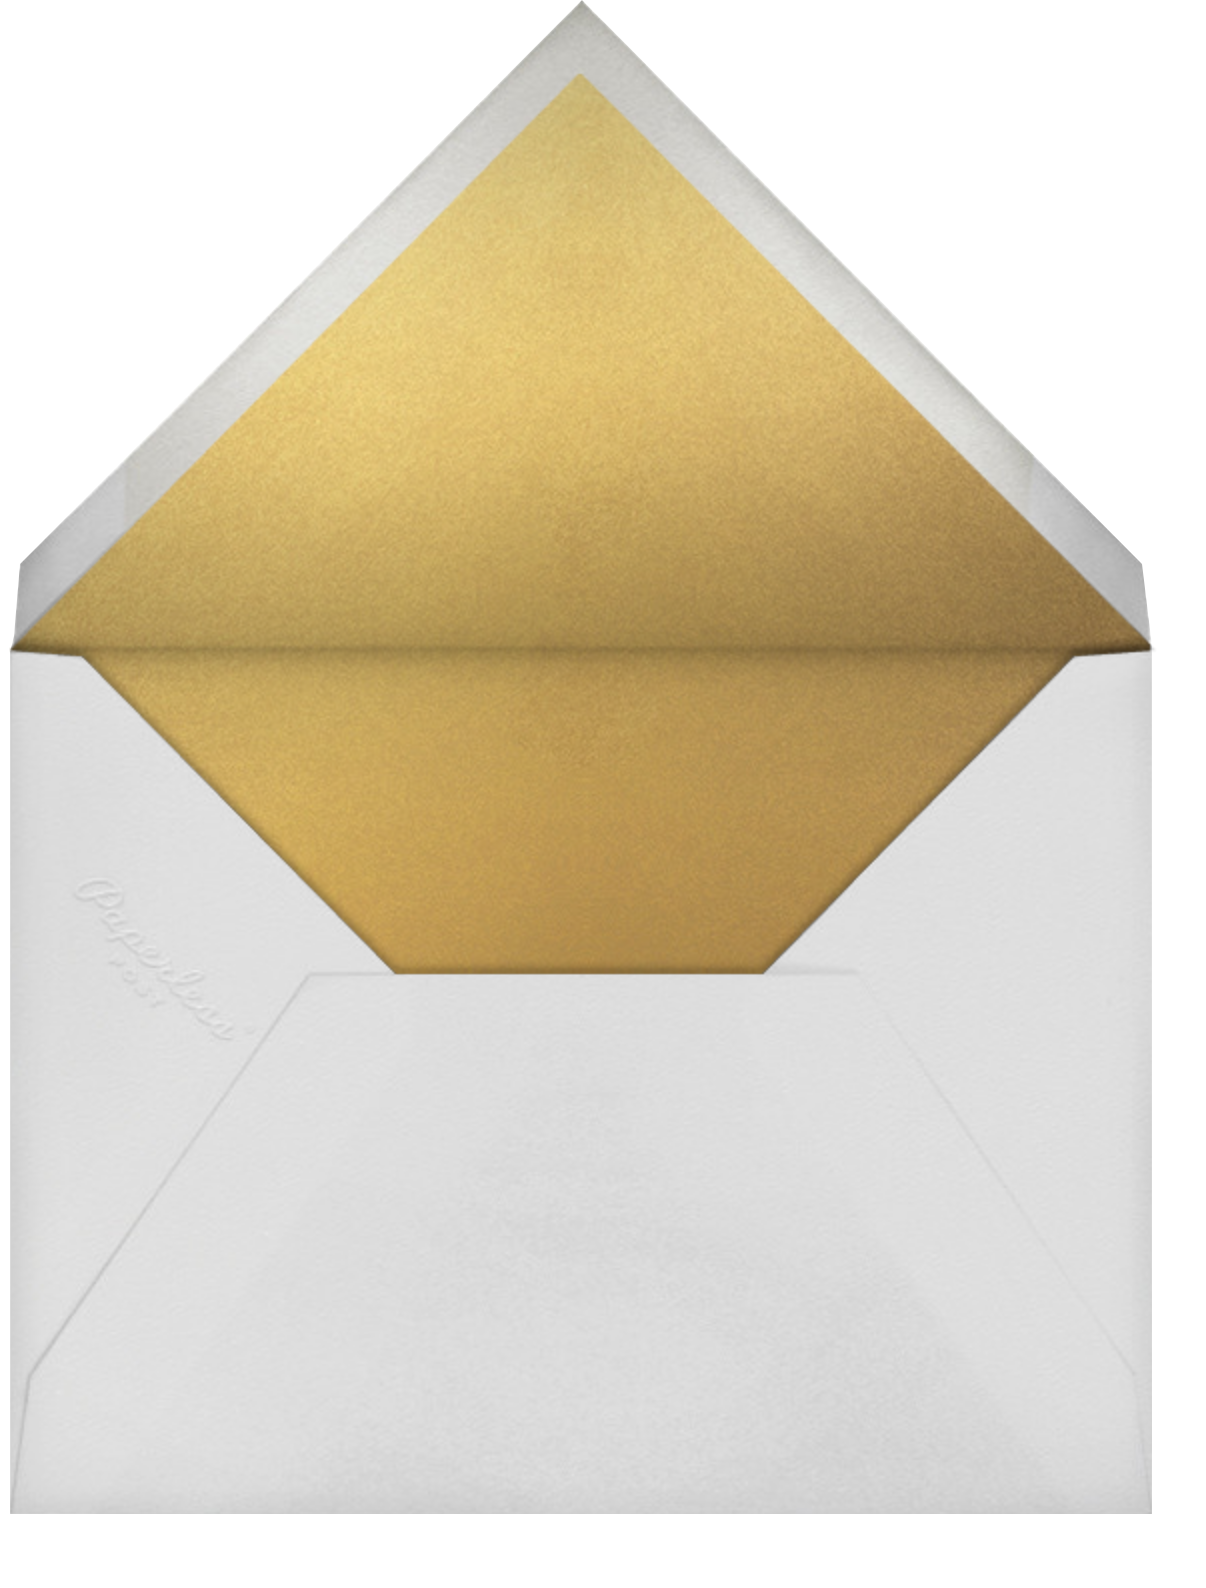 Mascarene (Save the Date) - Gold - Crane & Co. - Save the date - envelope back